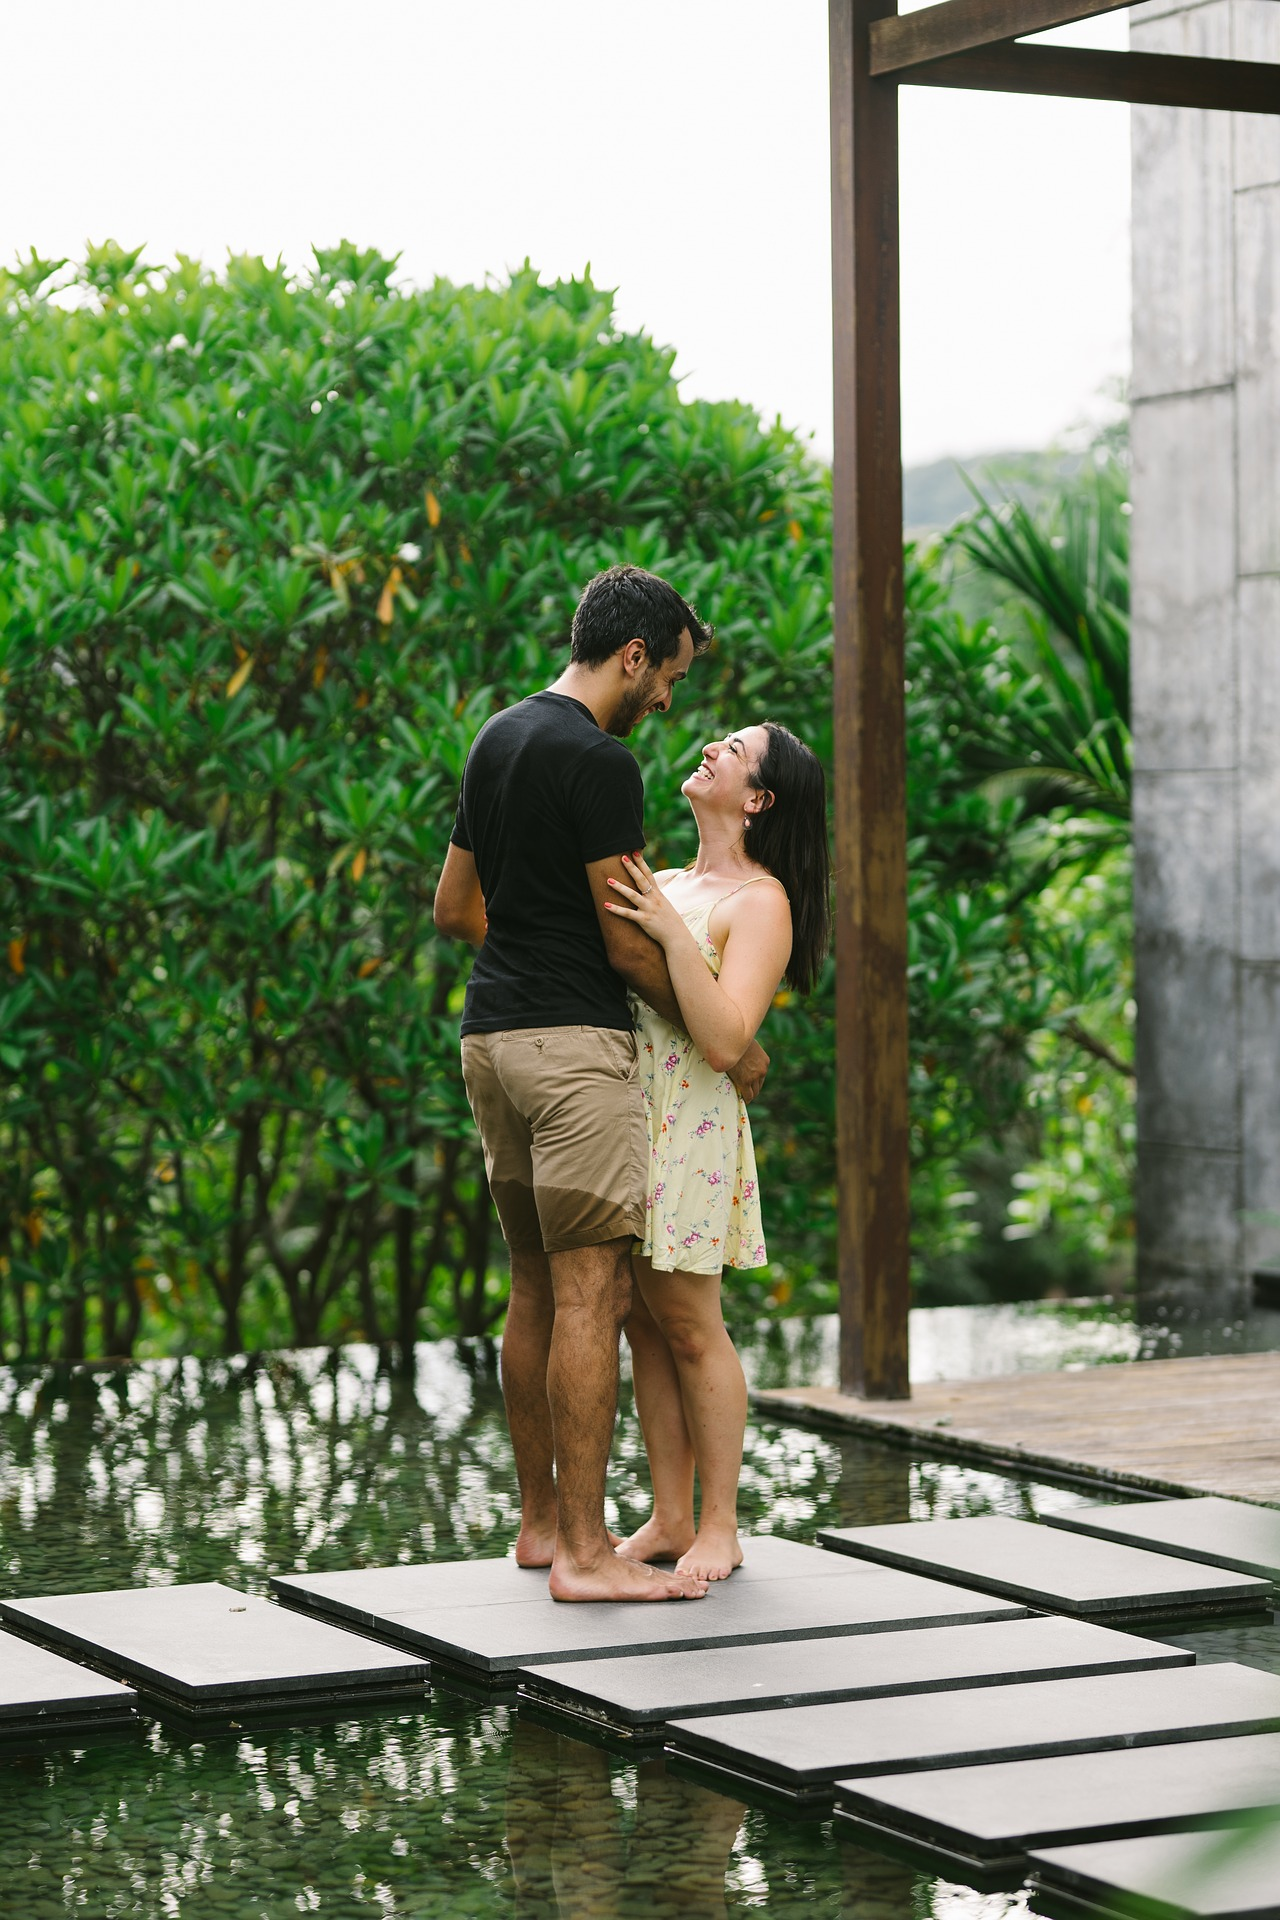 happy-indian-couple-entertainments-saga-dating-tips-online-dating-advice-online